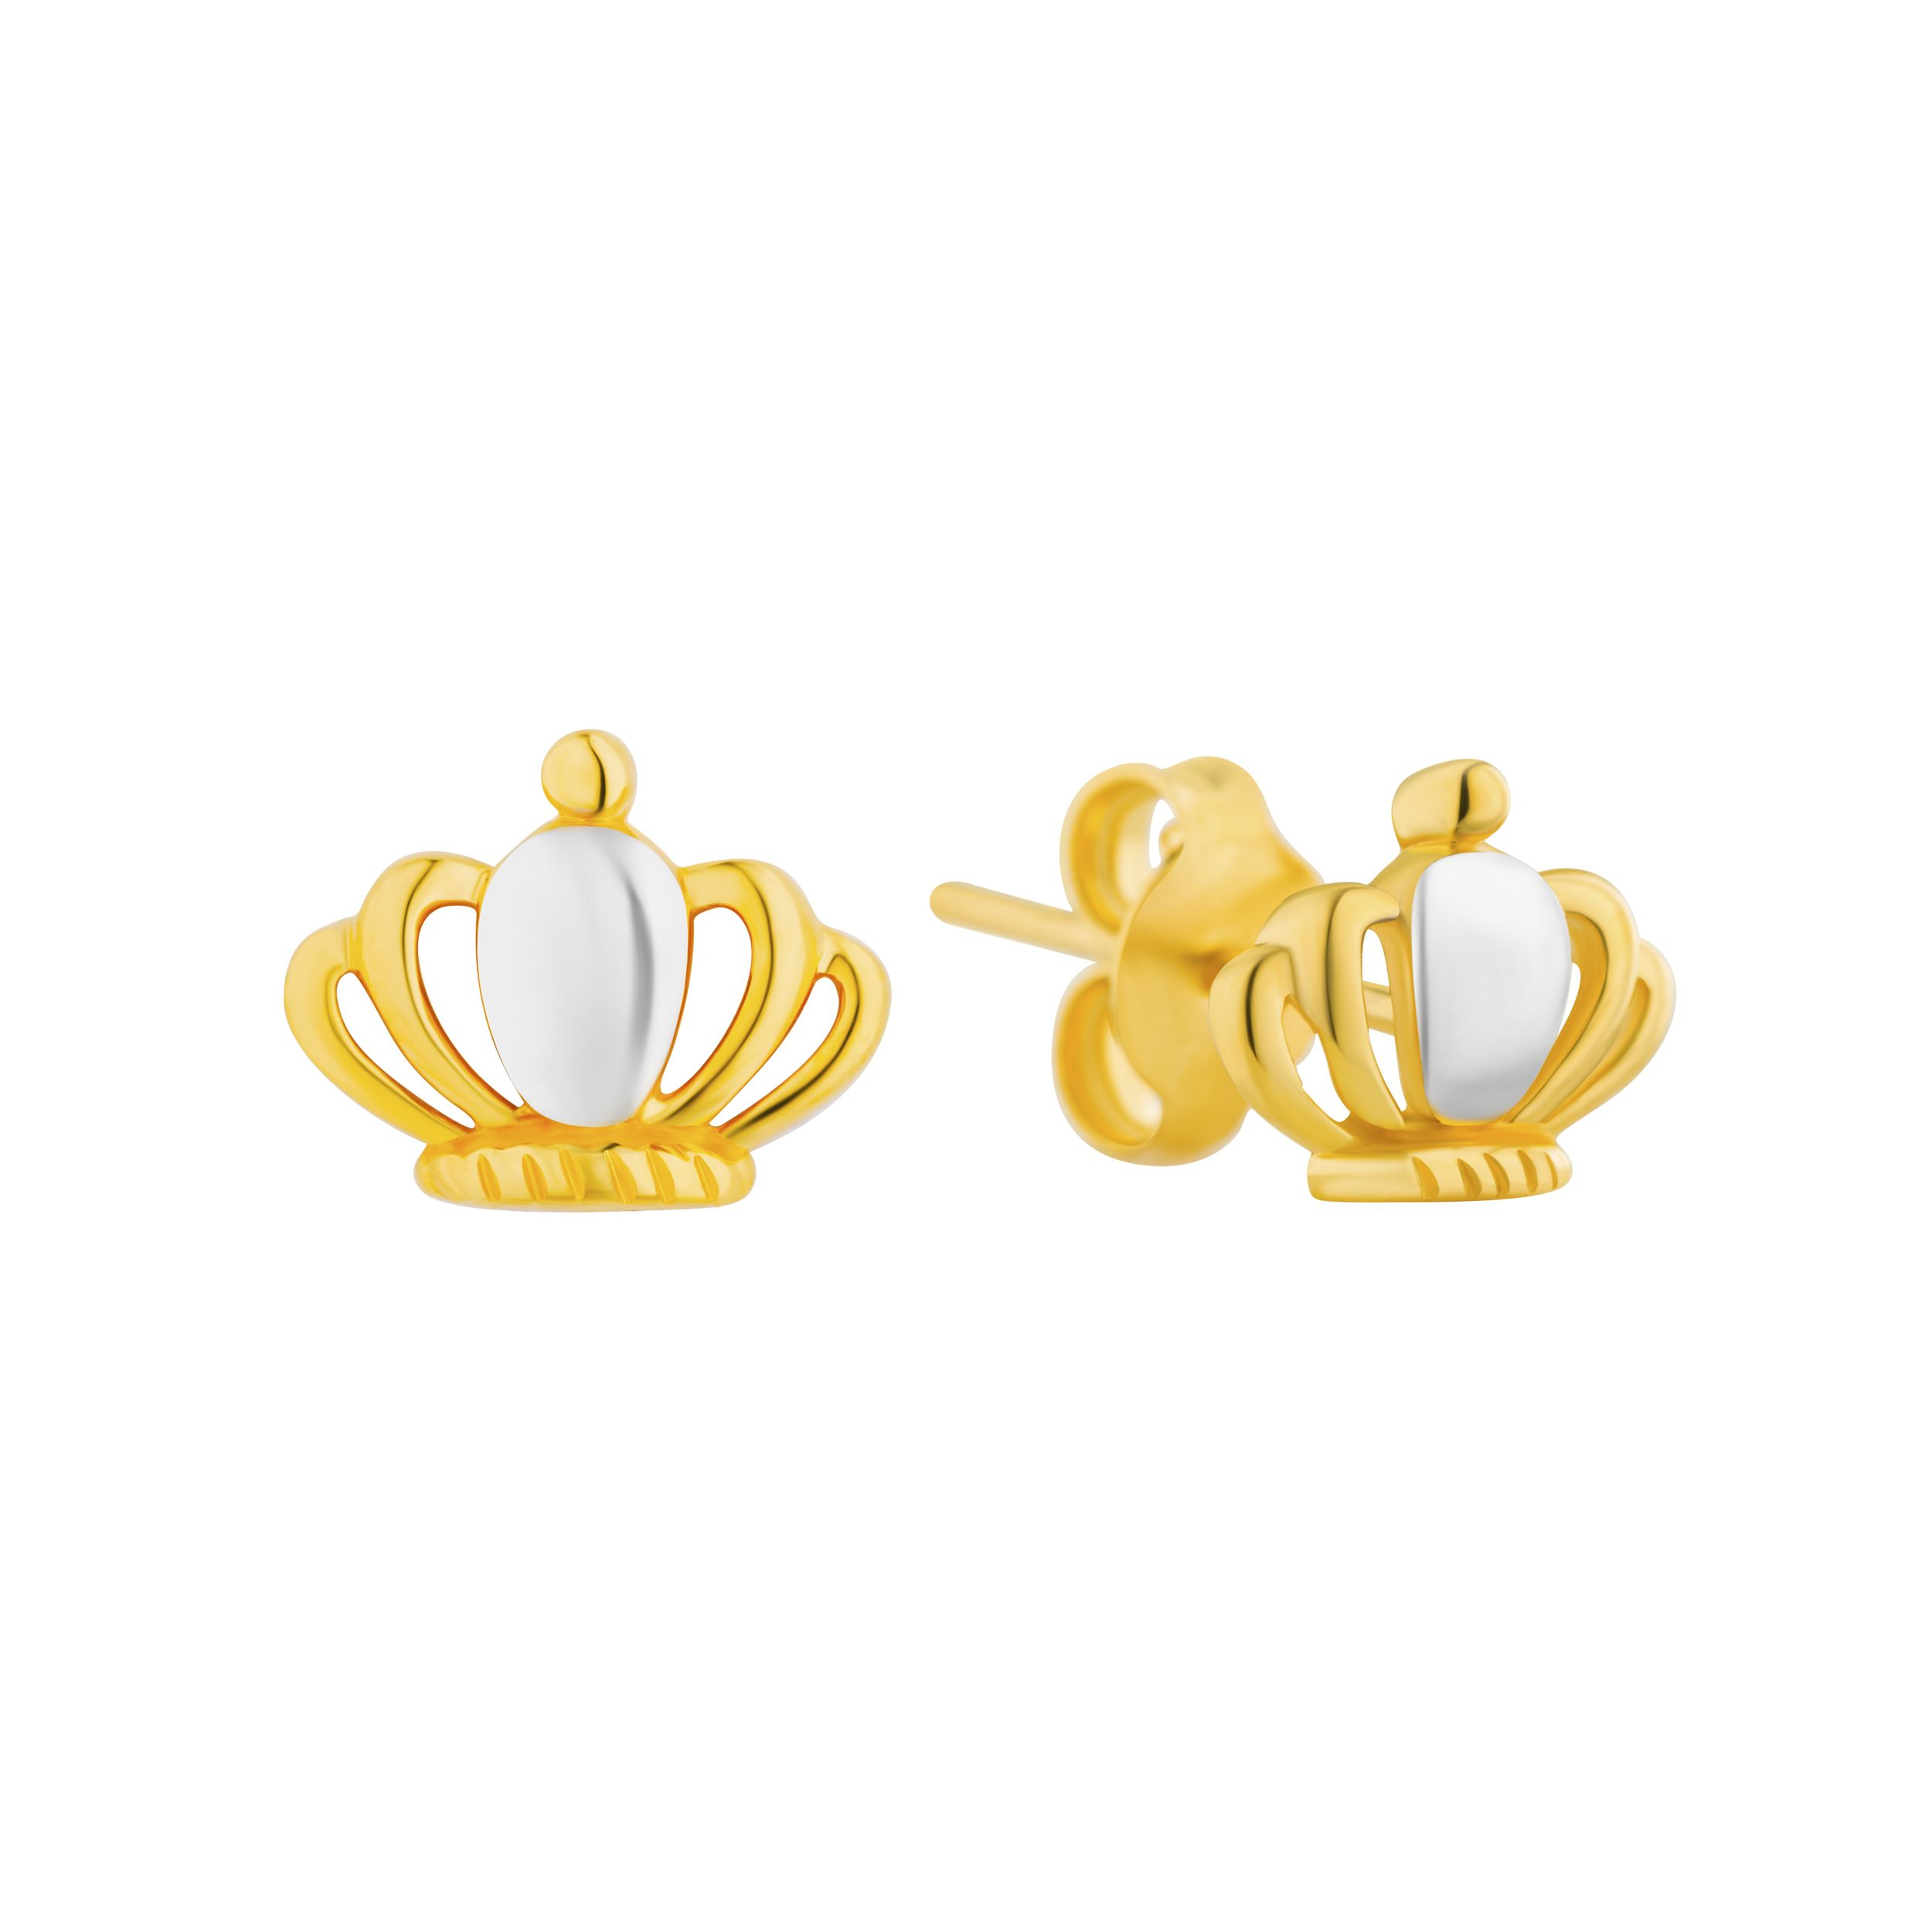 us of jewellery zirconia stud and earrings round icing cubic set